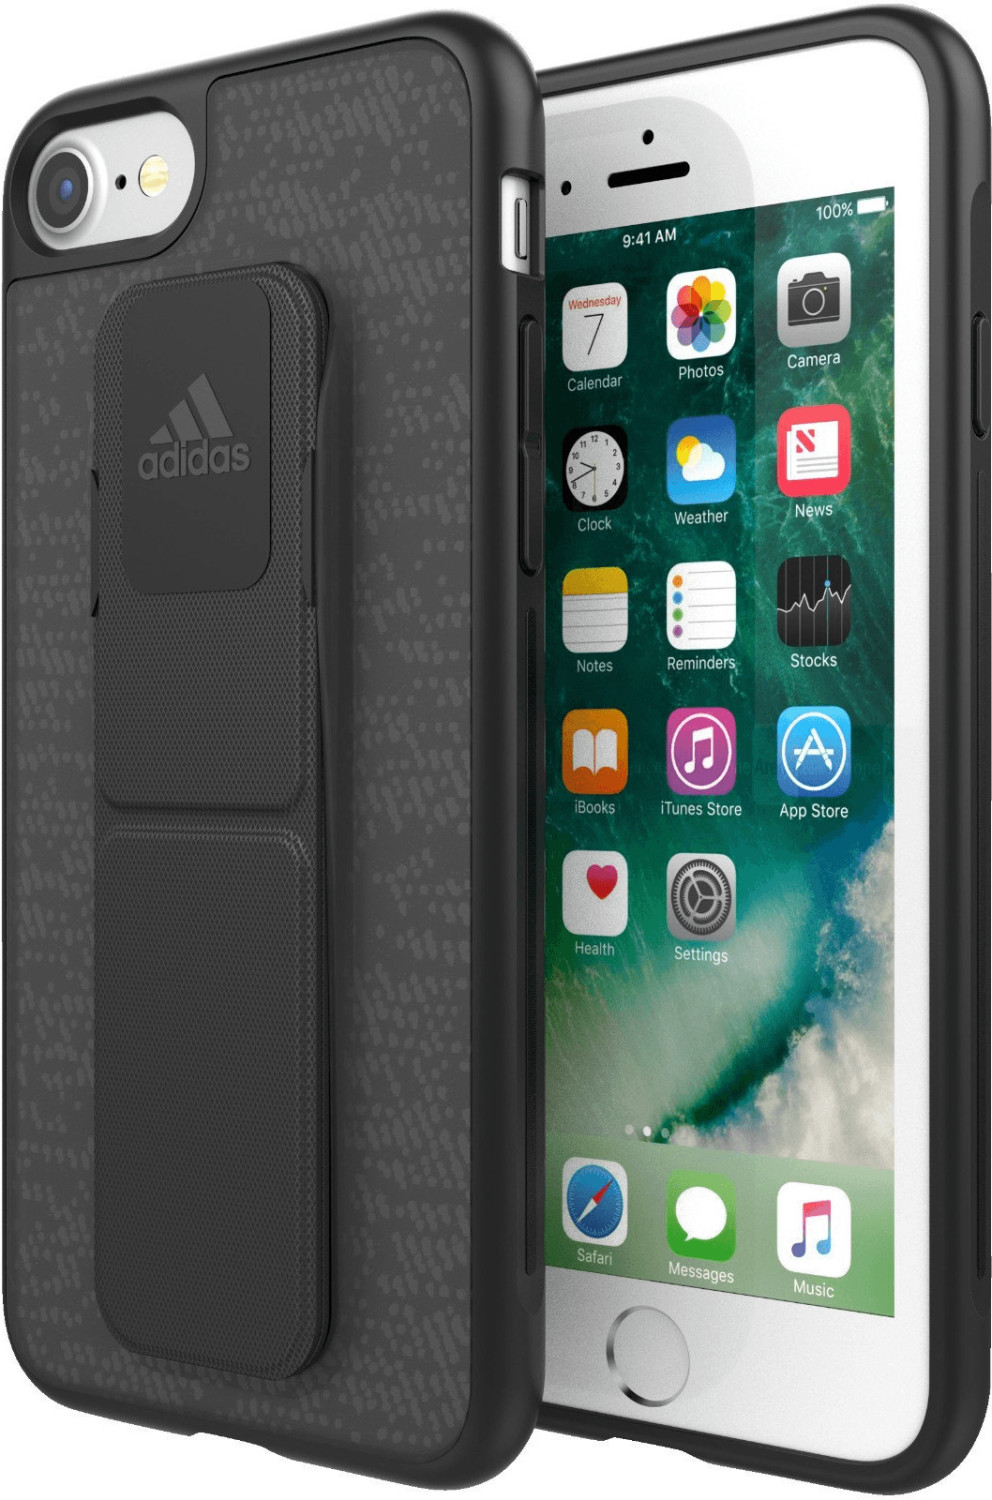 Image of Adidas Grip Case Backcover (iPhone 6/ 6s/ 7/ 8)